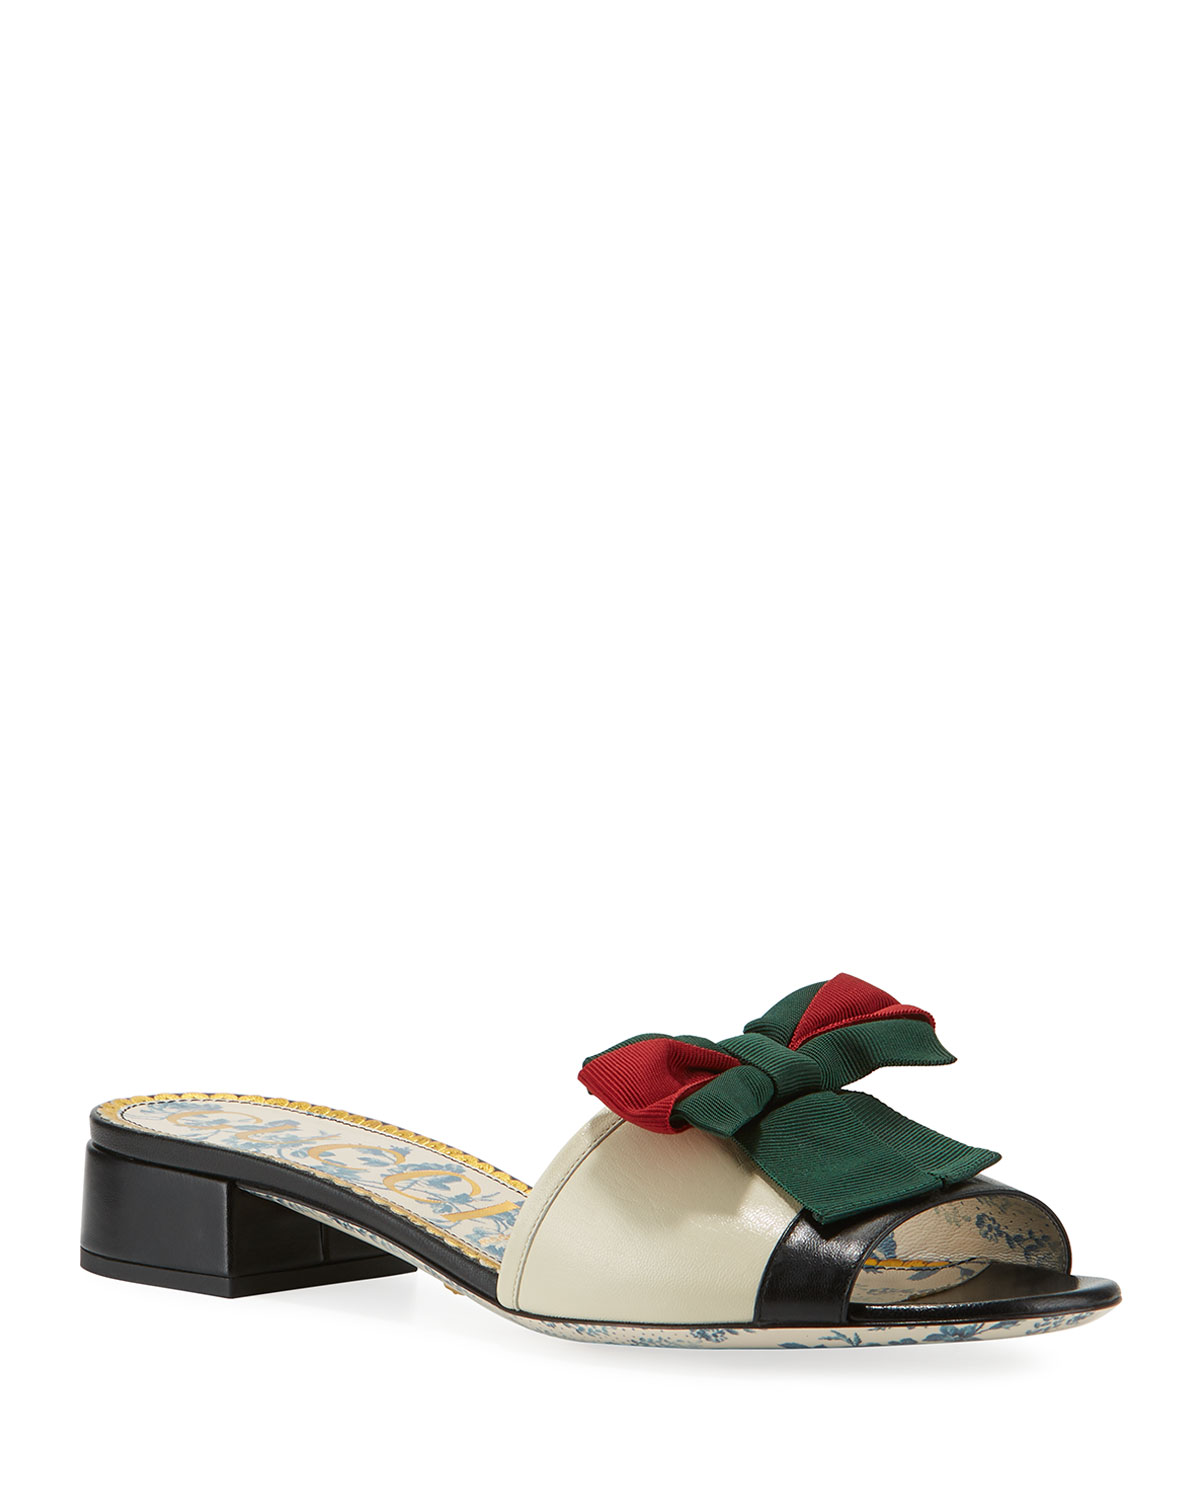 9308f5ac6f6 Gucci Leather Slide Sandal with Web Bow